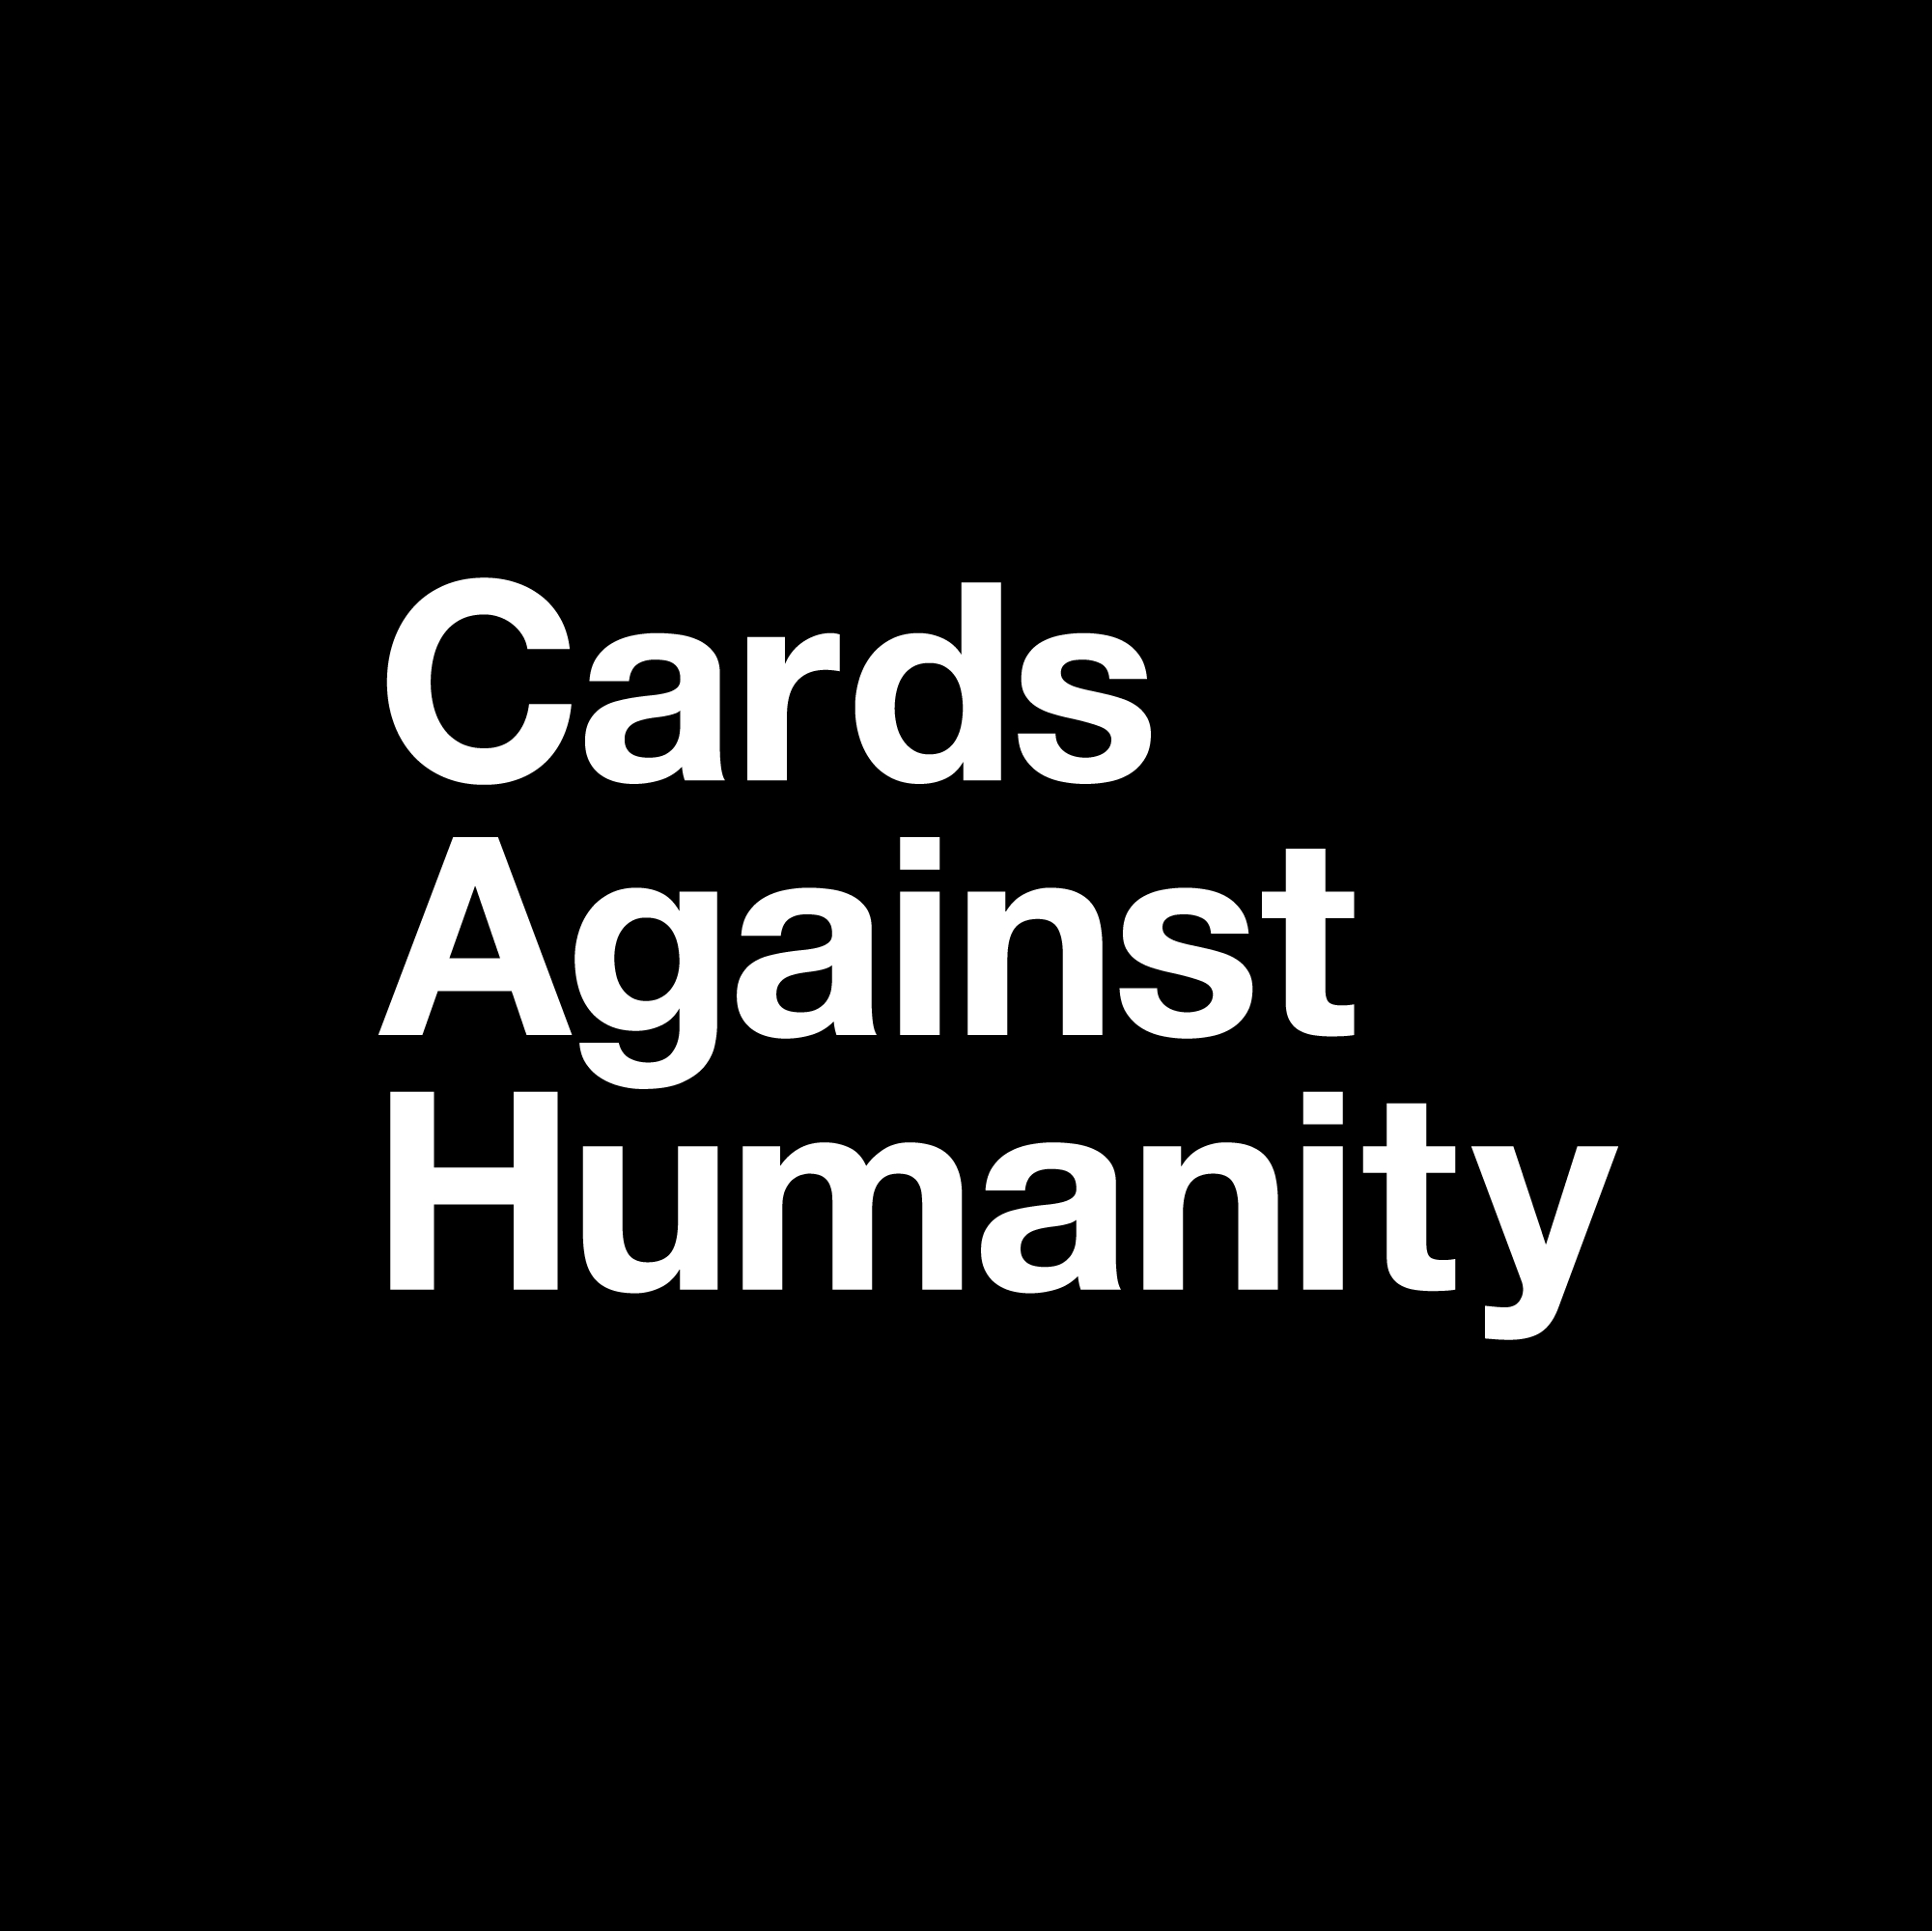 Cards Against Humanity - Wikipedia For Cards Against Humanity Template